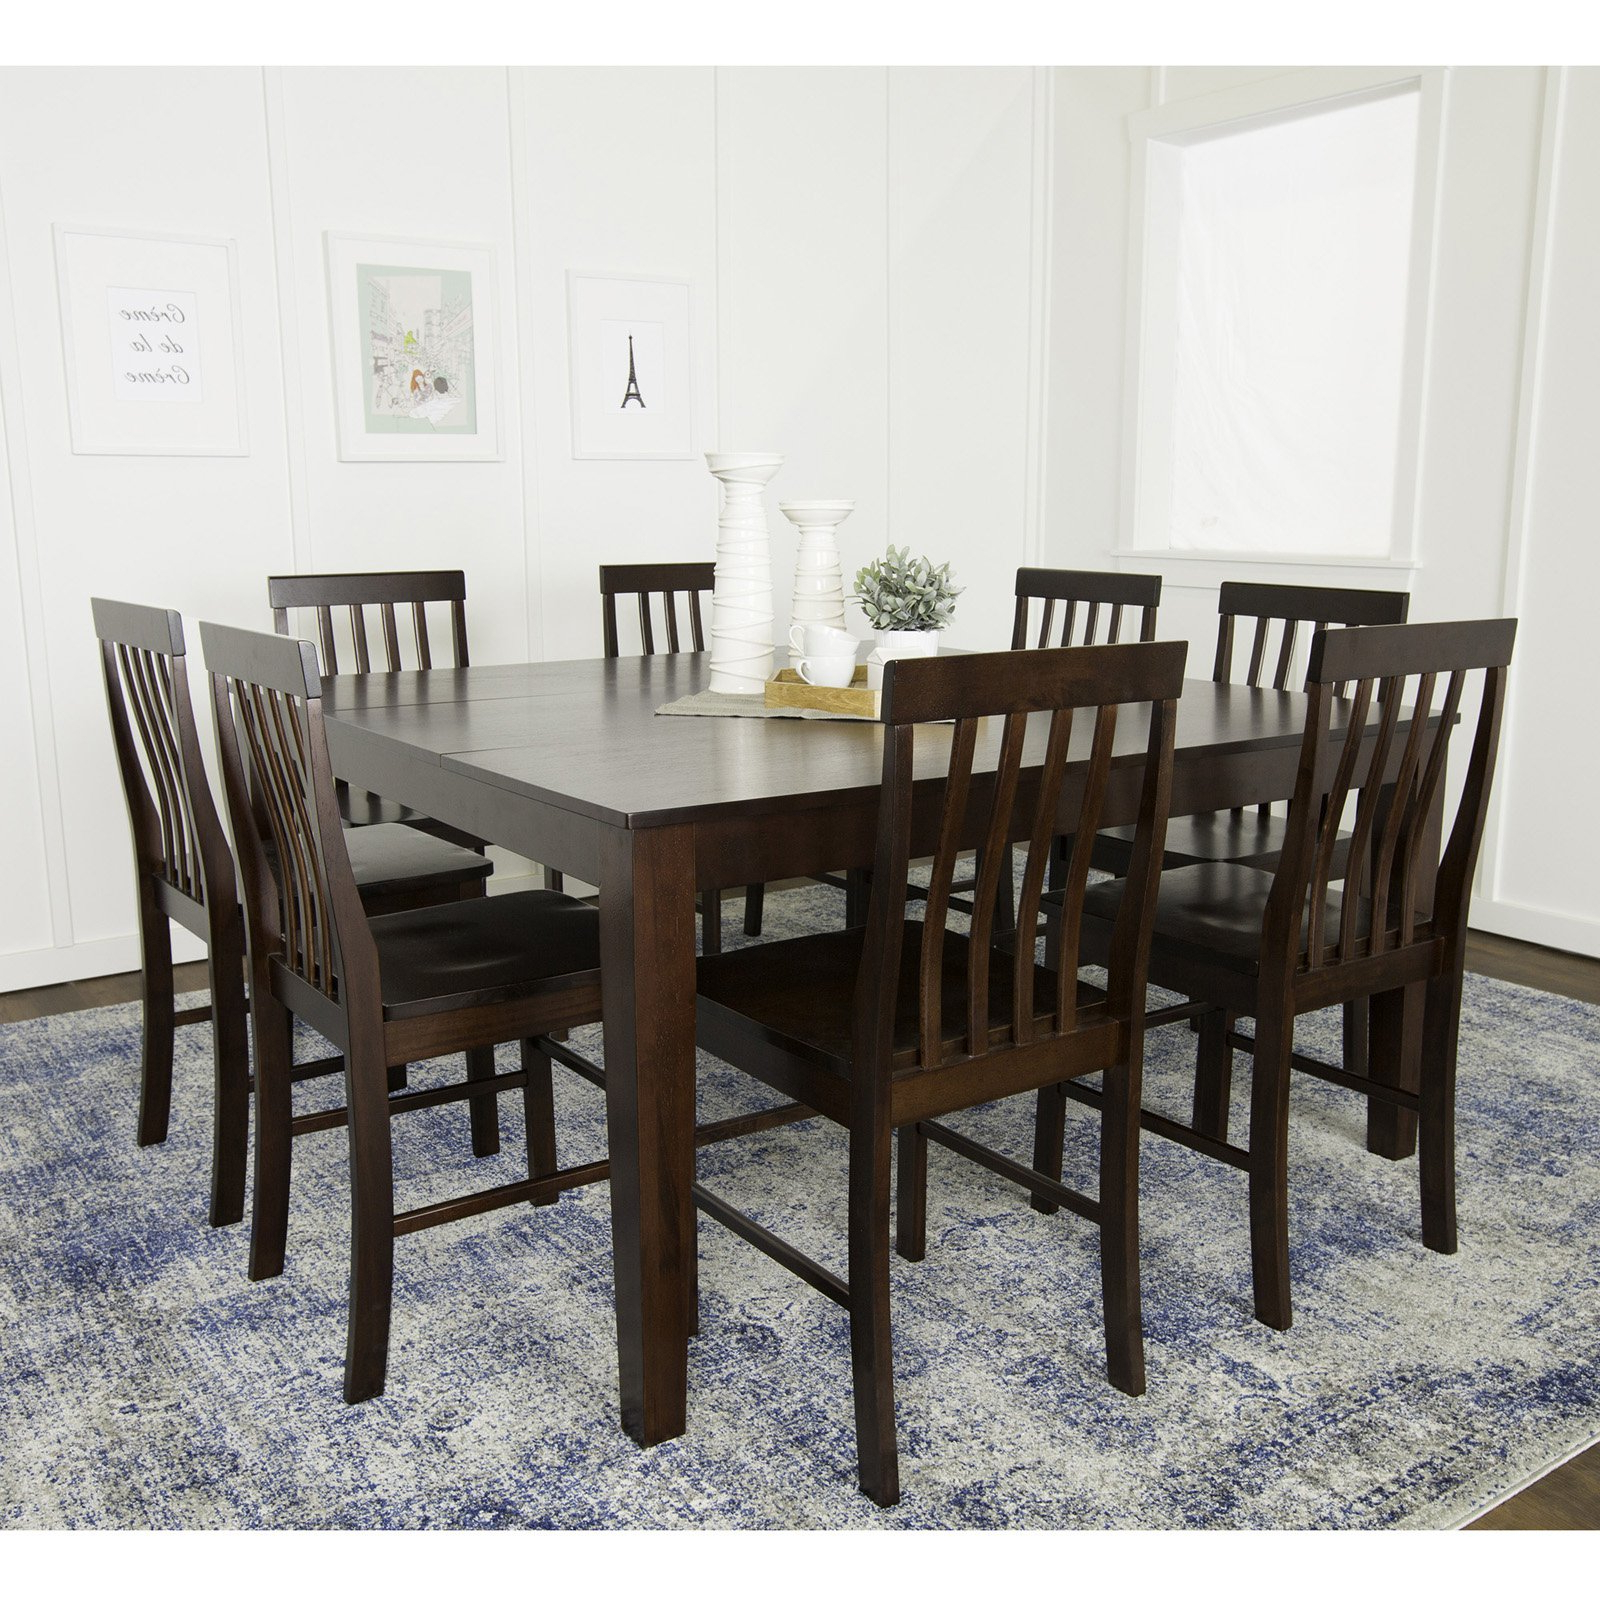 Cappuccino Finish Wood Classic Casual Dining Tables Intended For Well Liked Walker Edison Solid Wood Casual Dining Table – Cappuccino (View 22 of 25)